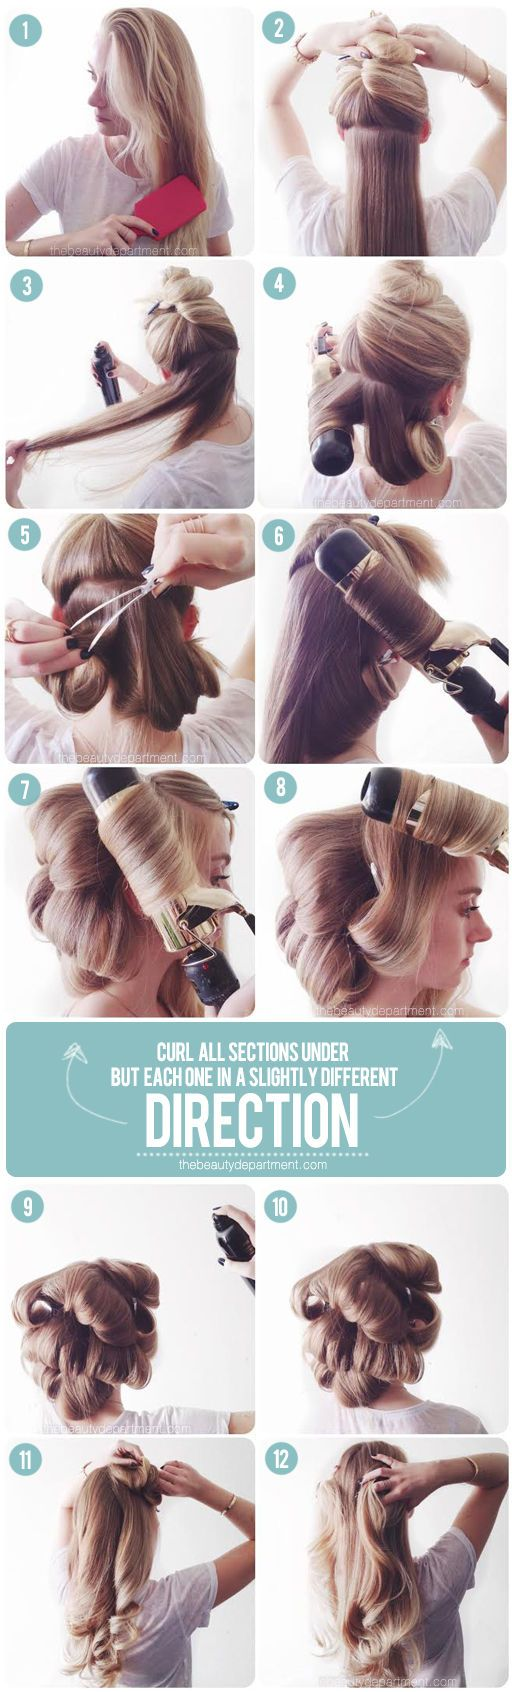 Fake a pro blowout with a curling iron. #longhair #hairstyle #hairtutorial